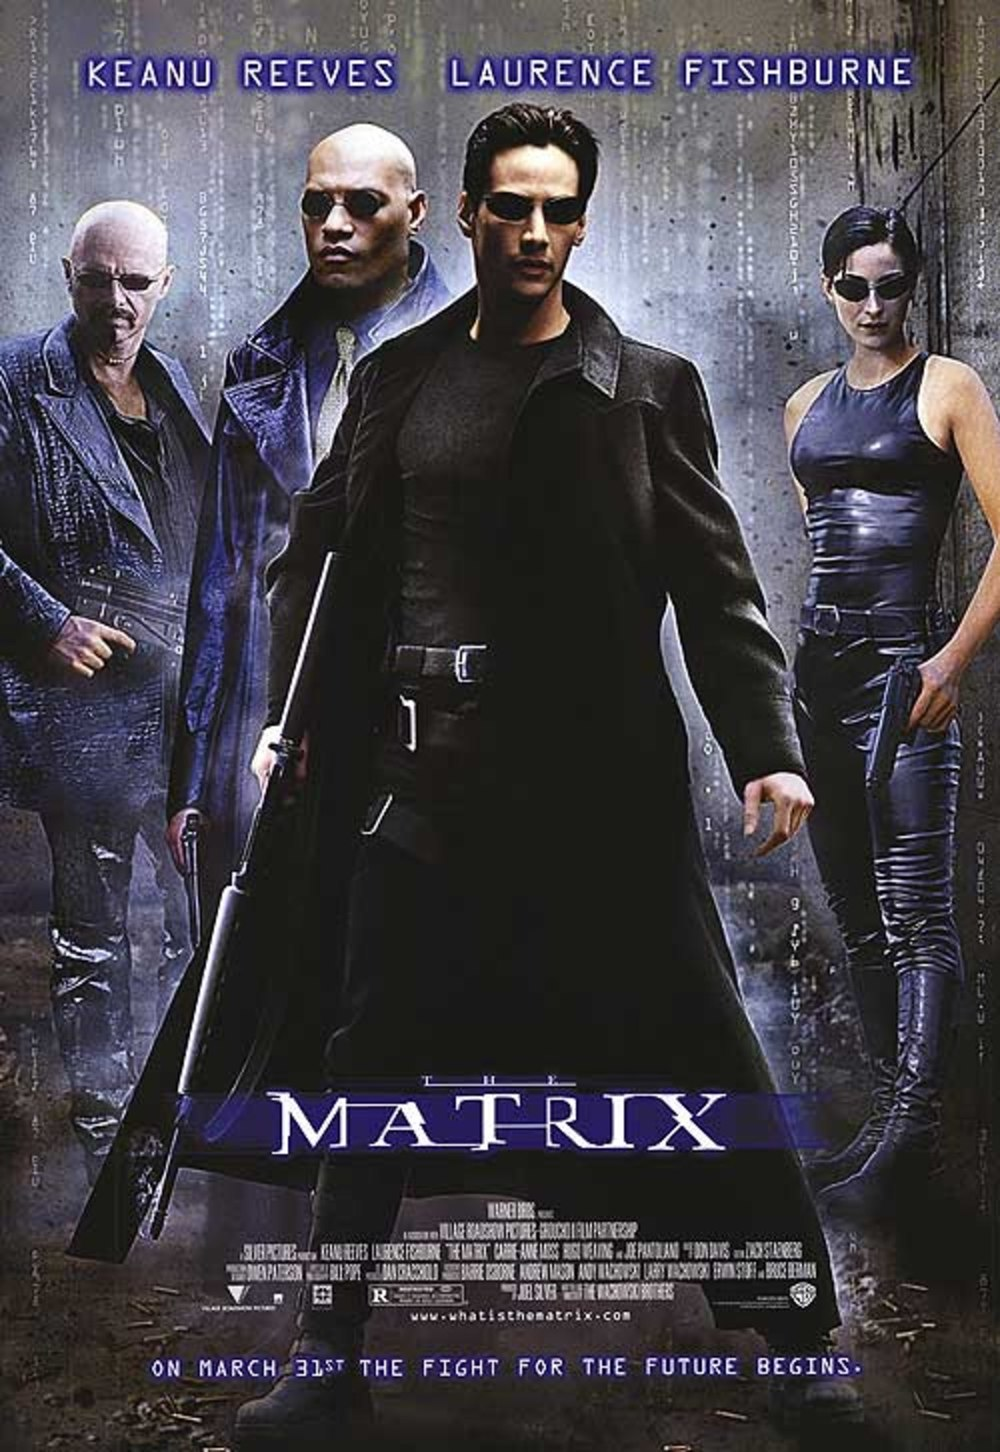 The-Matrix-Movie-Poster.jpg